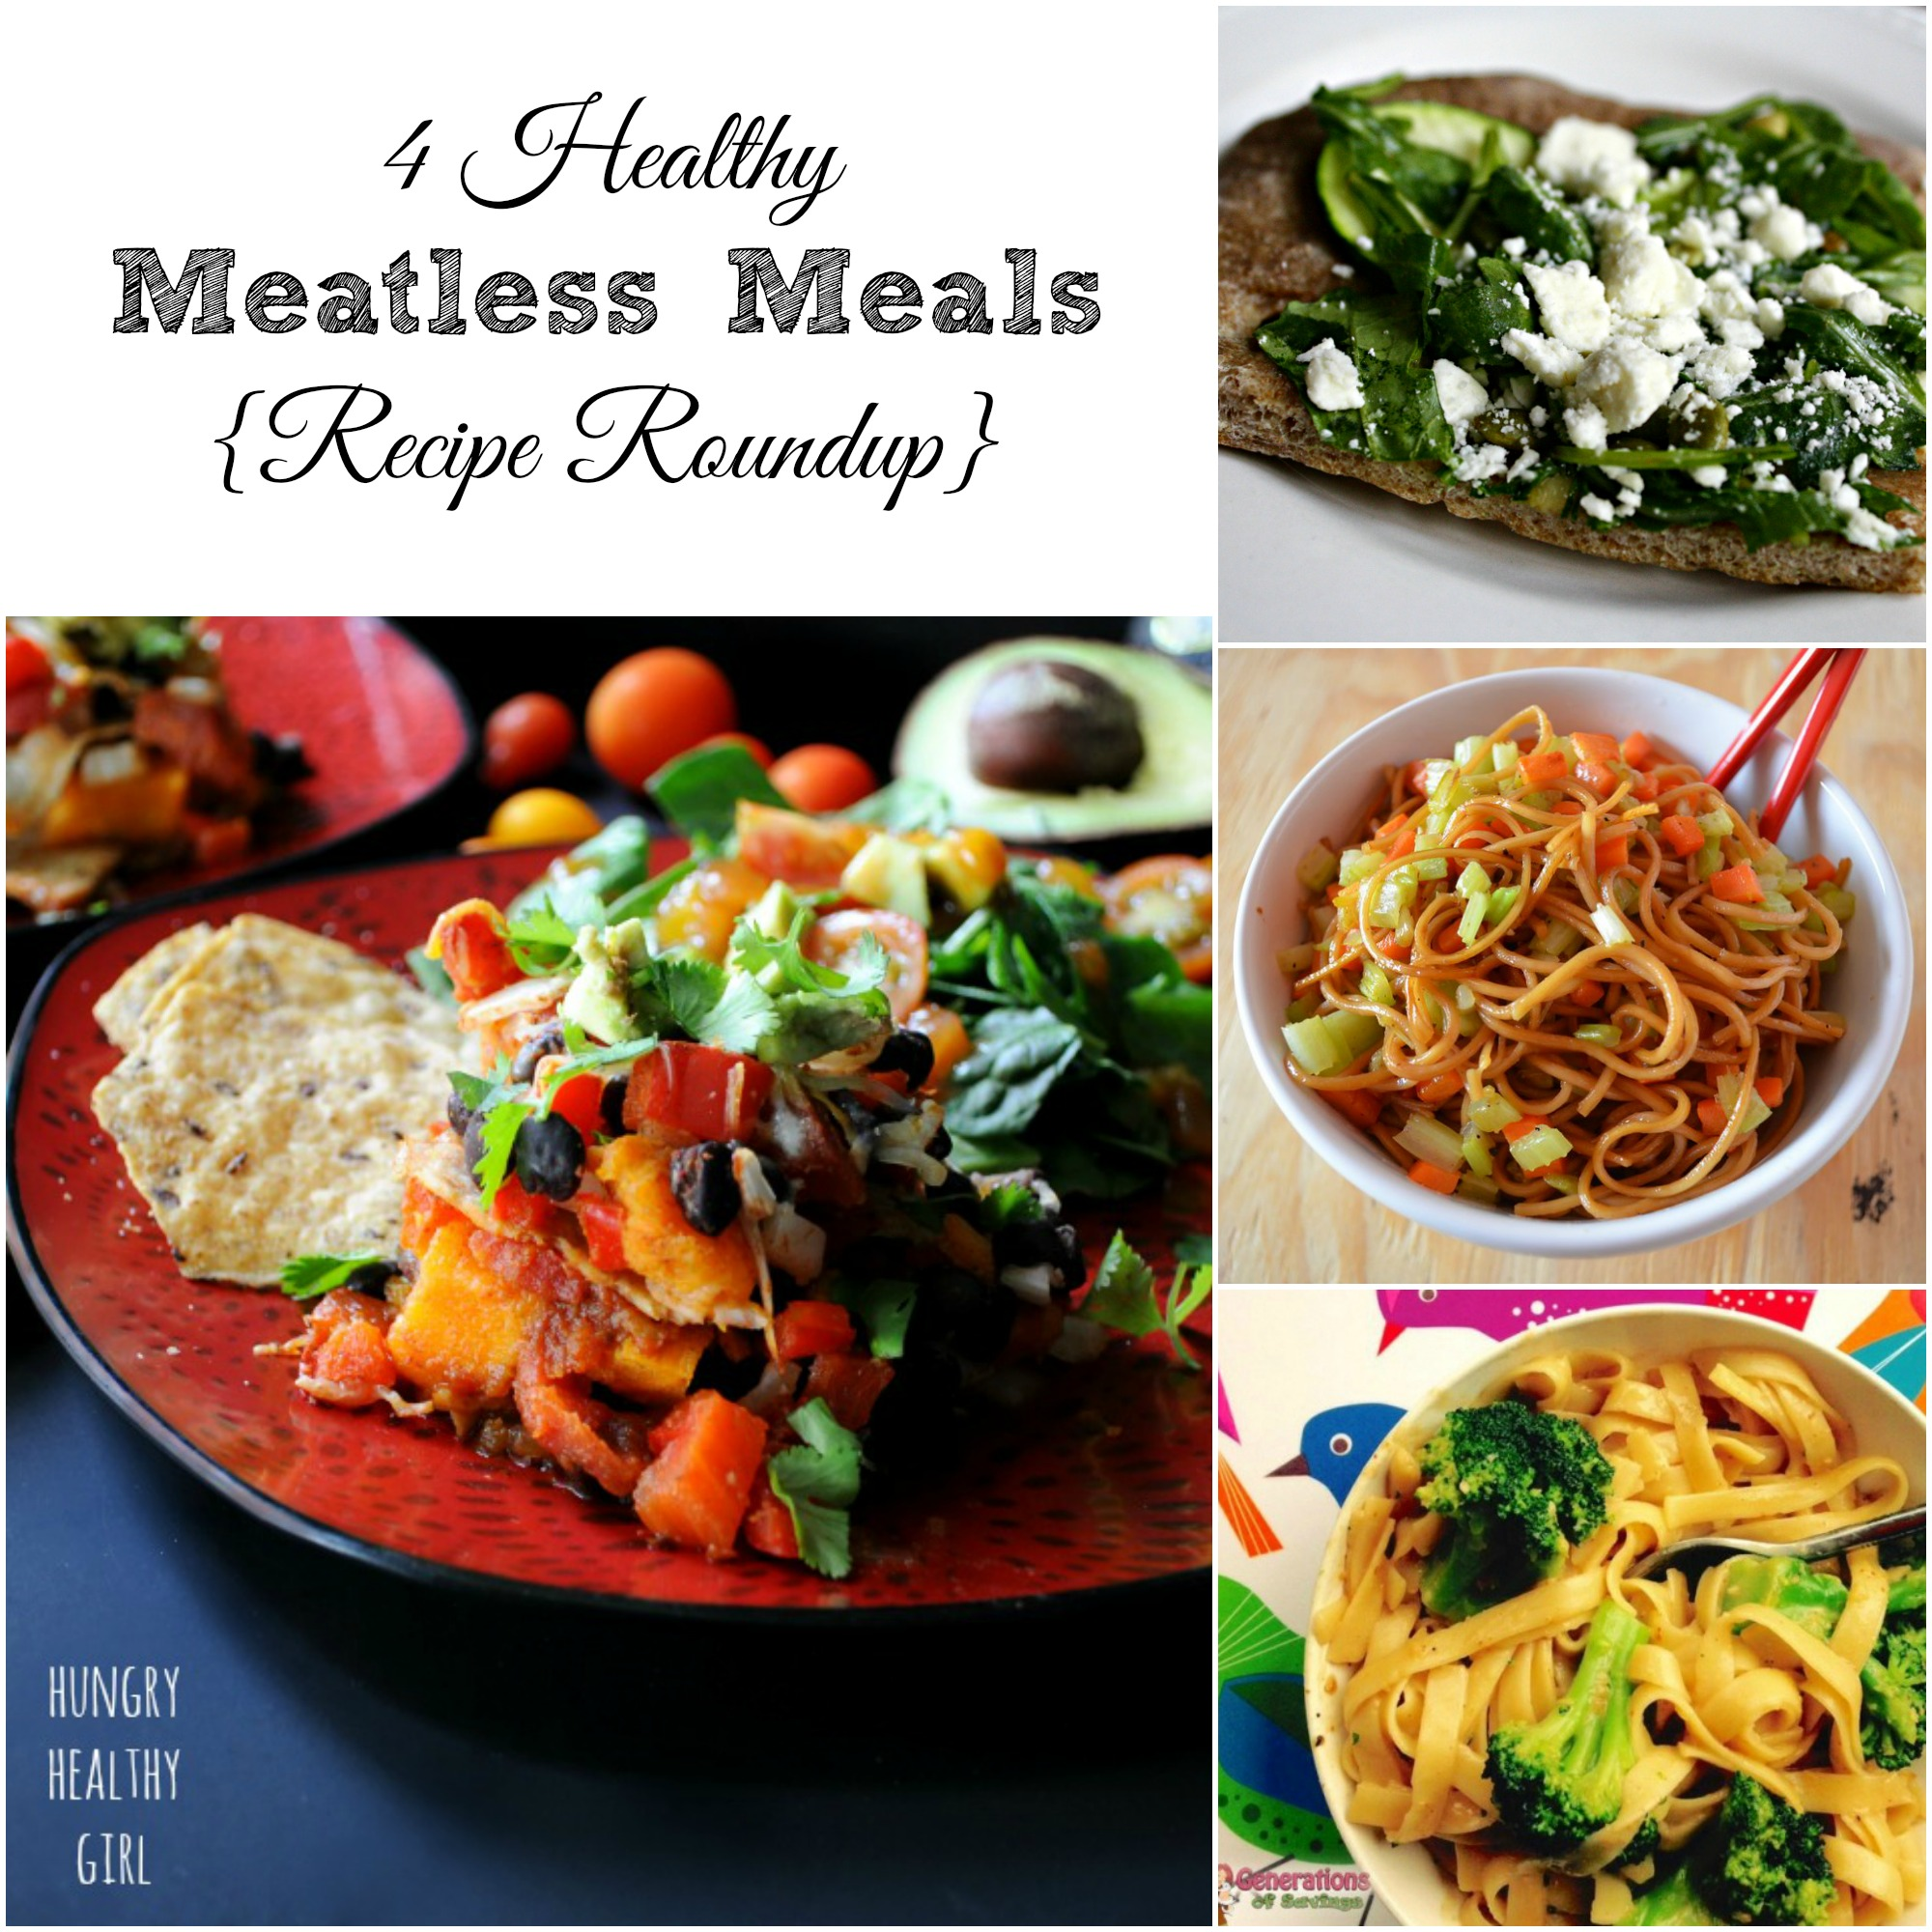 meatless meals, healthy recipes, vegetarian meals